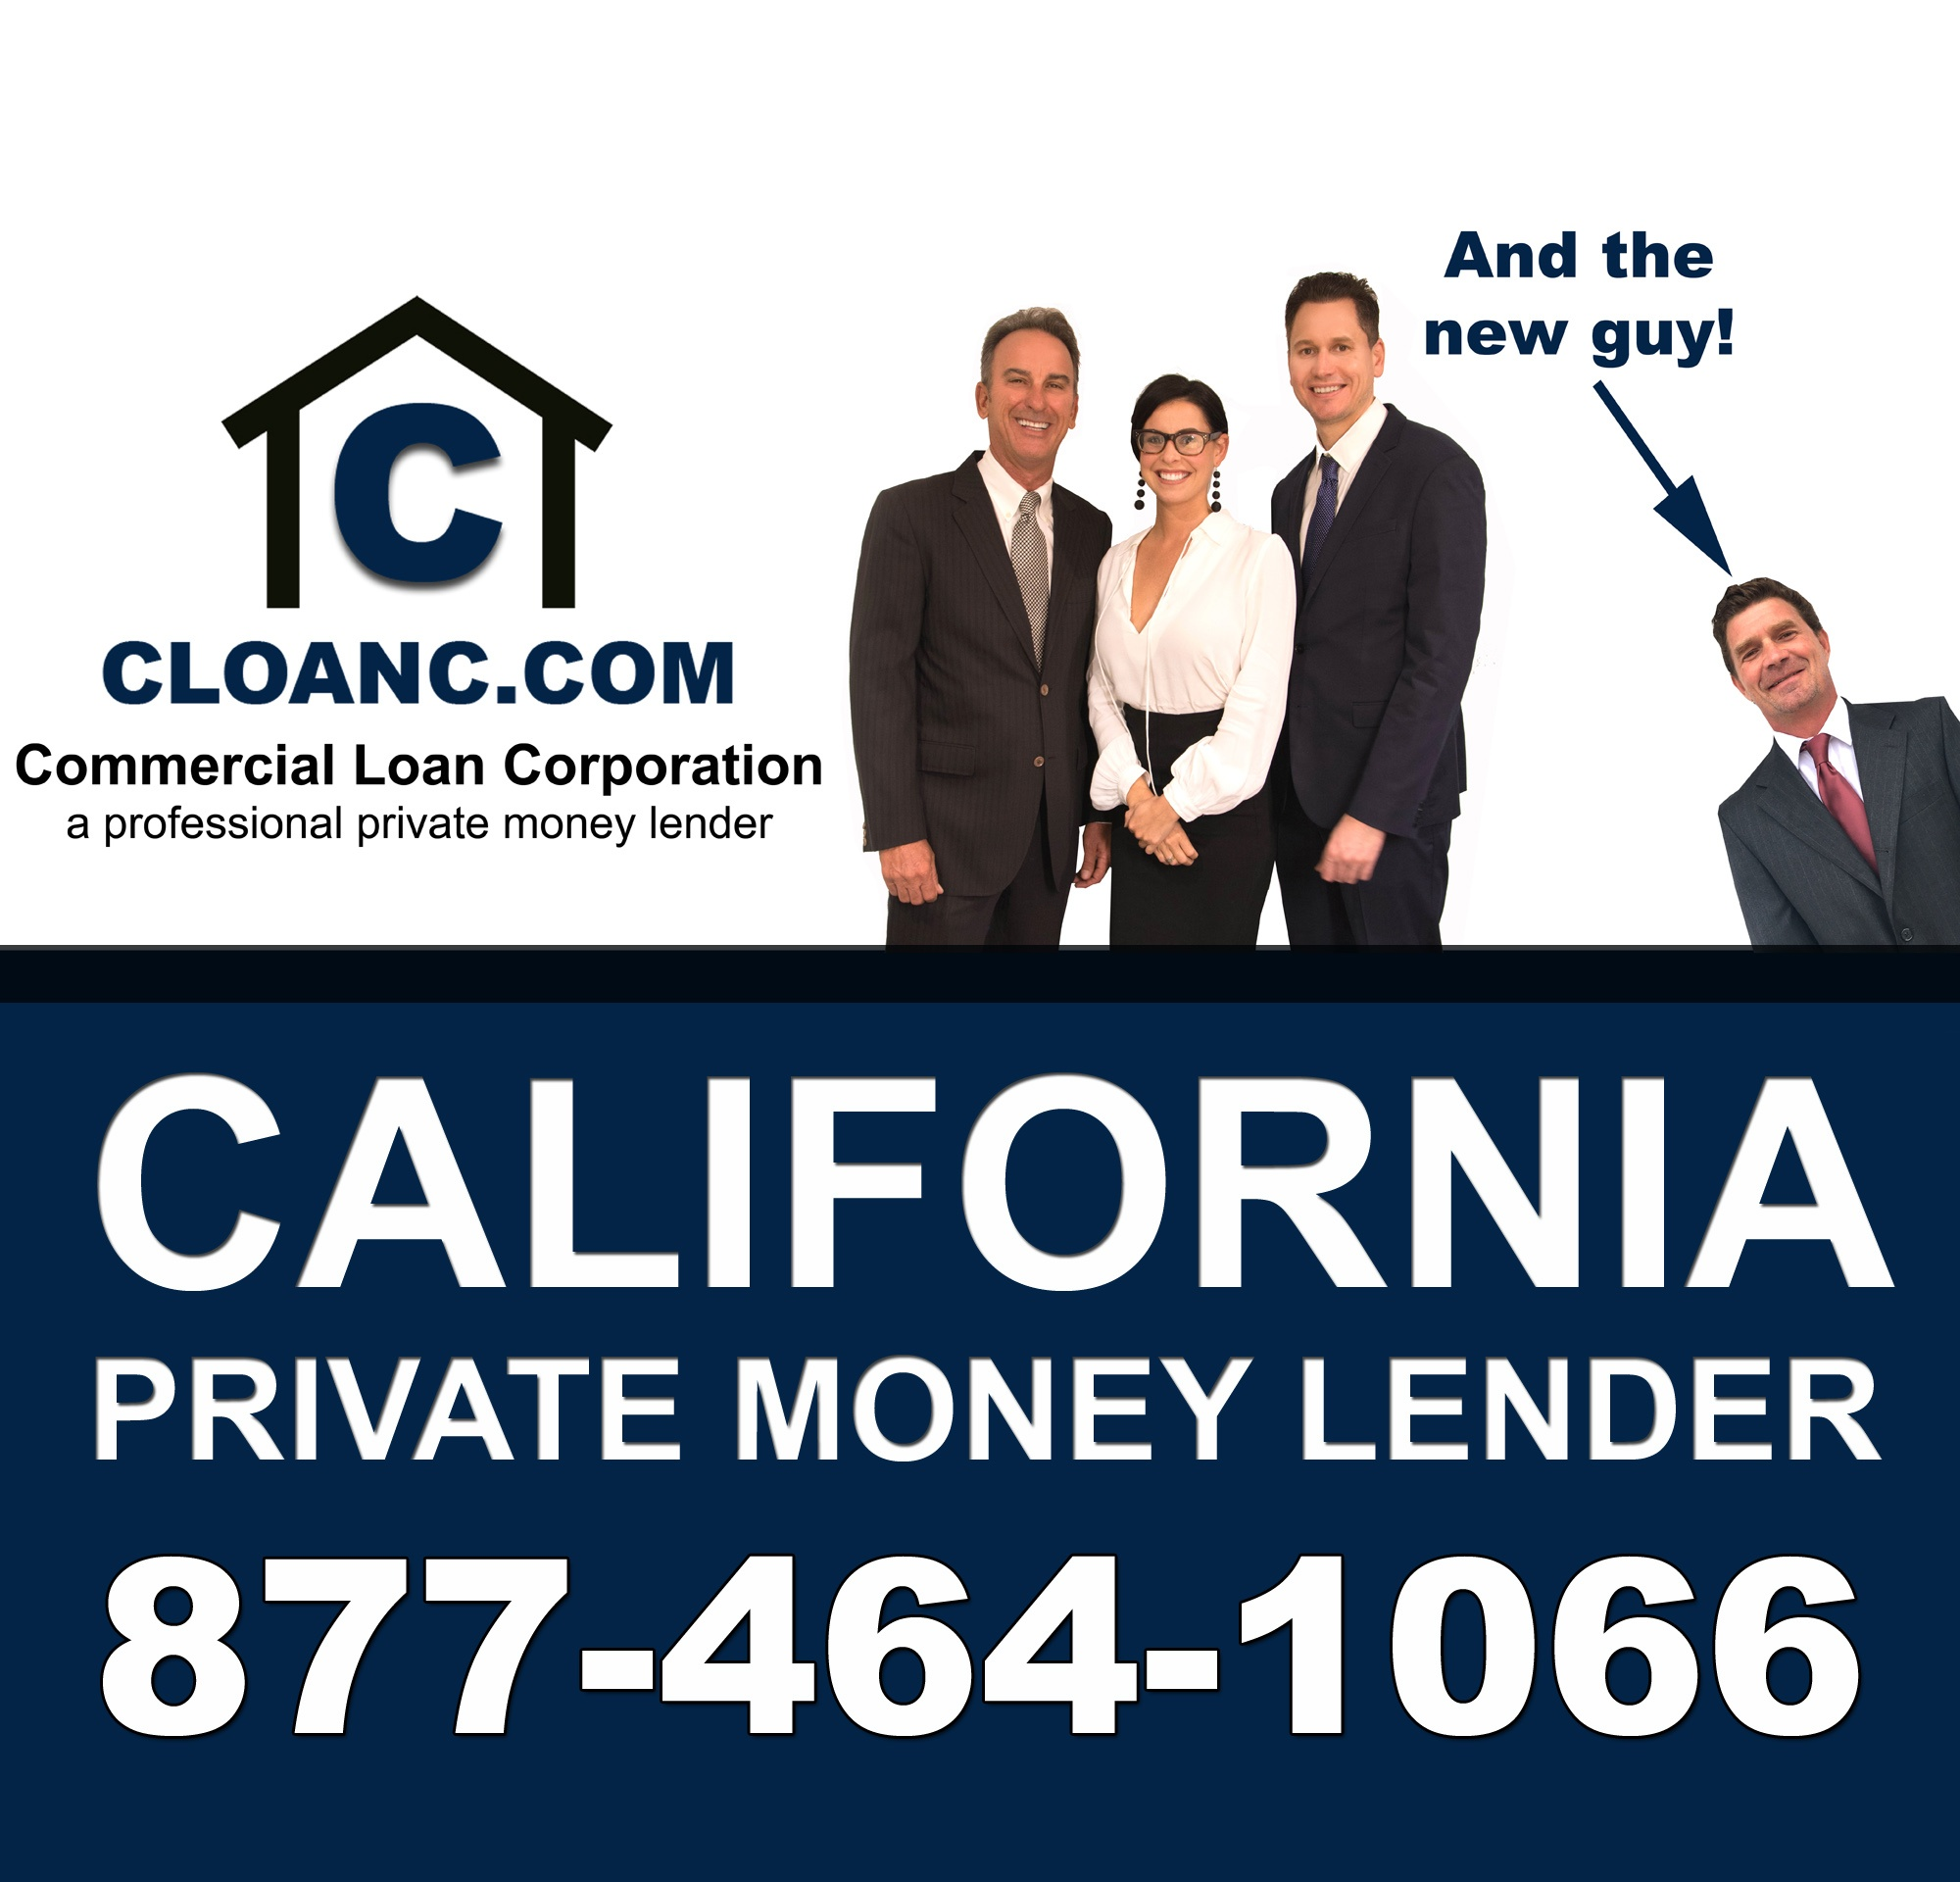 CALIFORNIA PRIVATE MONEY LENDER